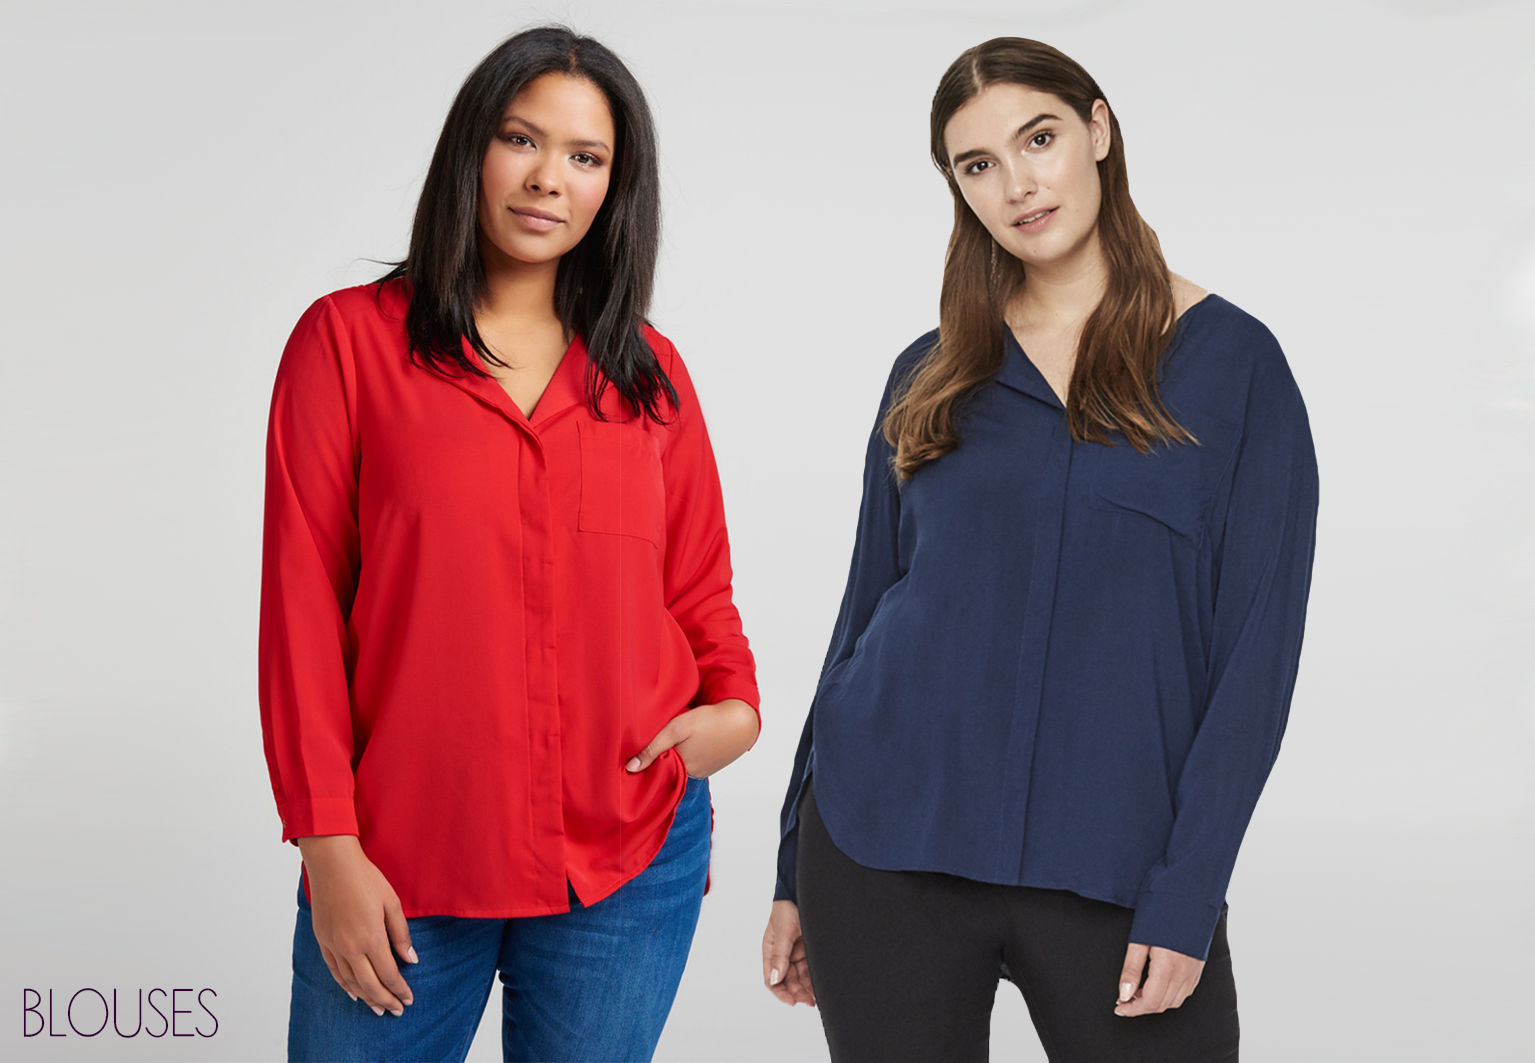 grote maten mode collectie 2019 blouses